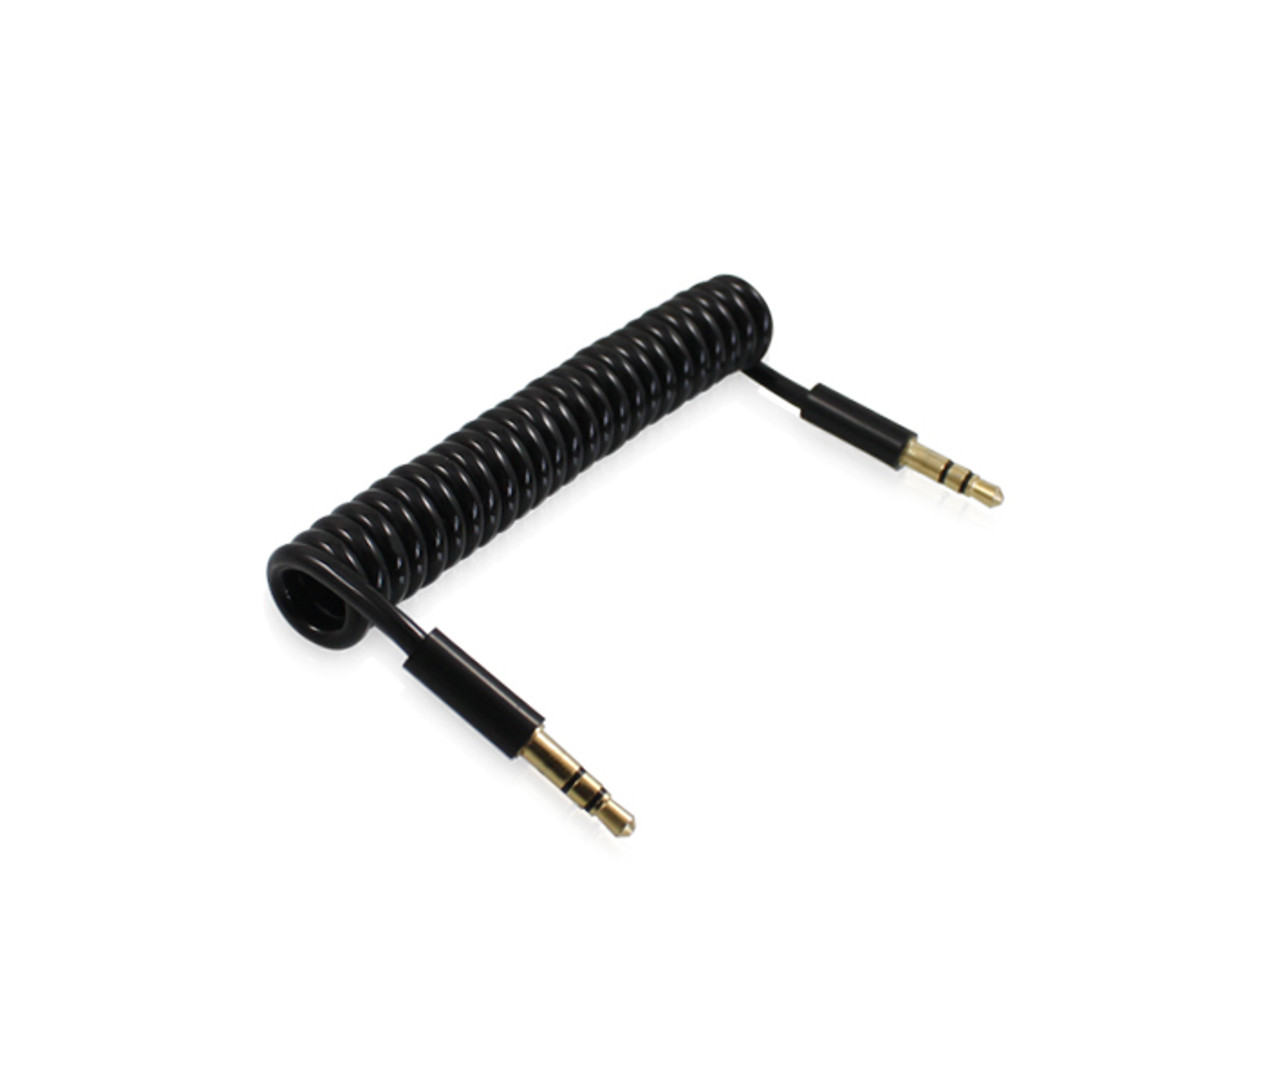 Product image for 1M Coiled 3.5mm Audio Cable | CX Computer Superstore